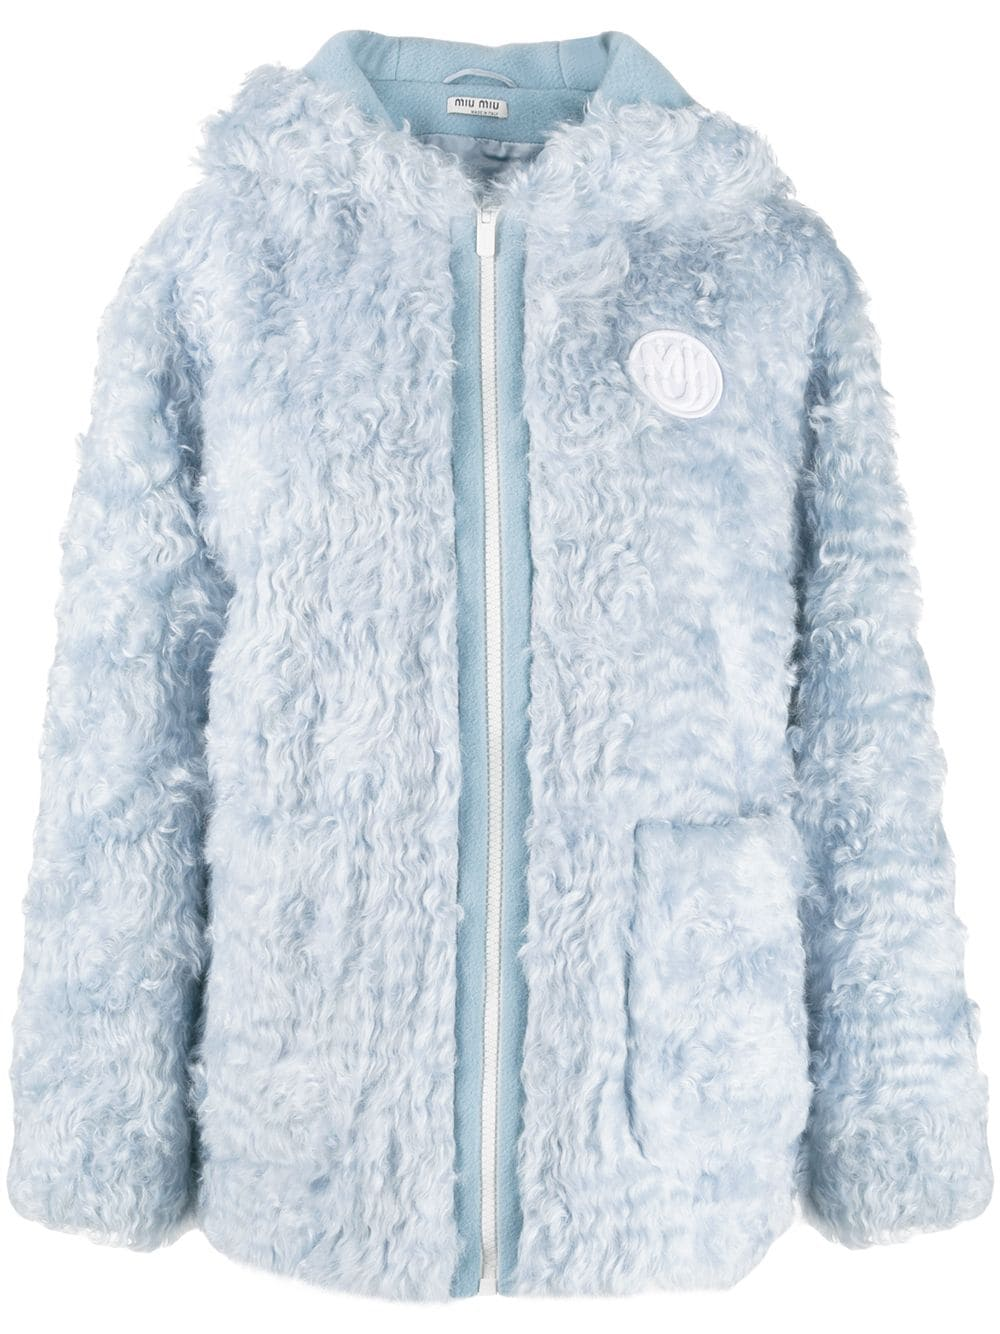 bba16dd4d887 Miu Miu shearling jacket - Blue in 2019 | Products | Shearling ...